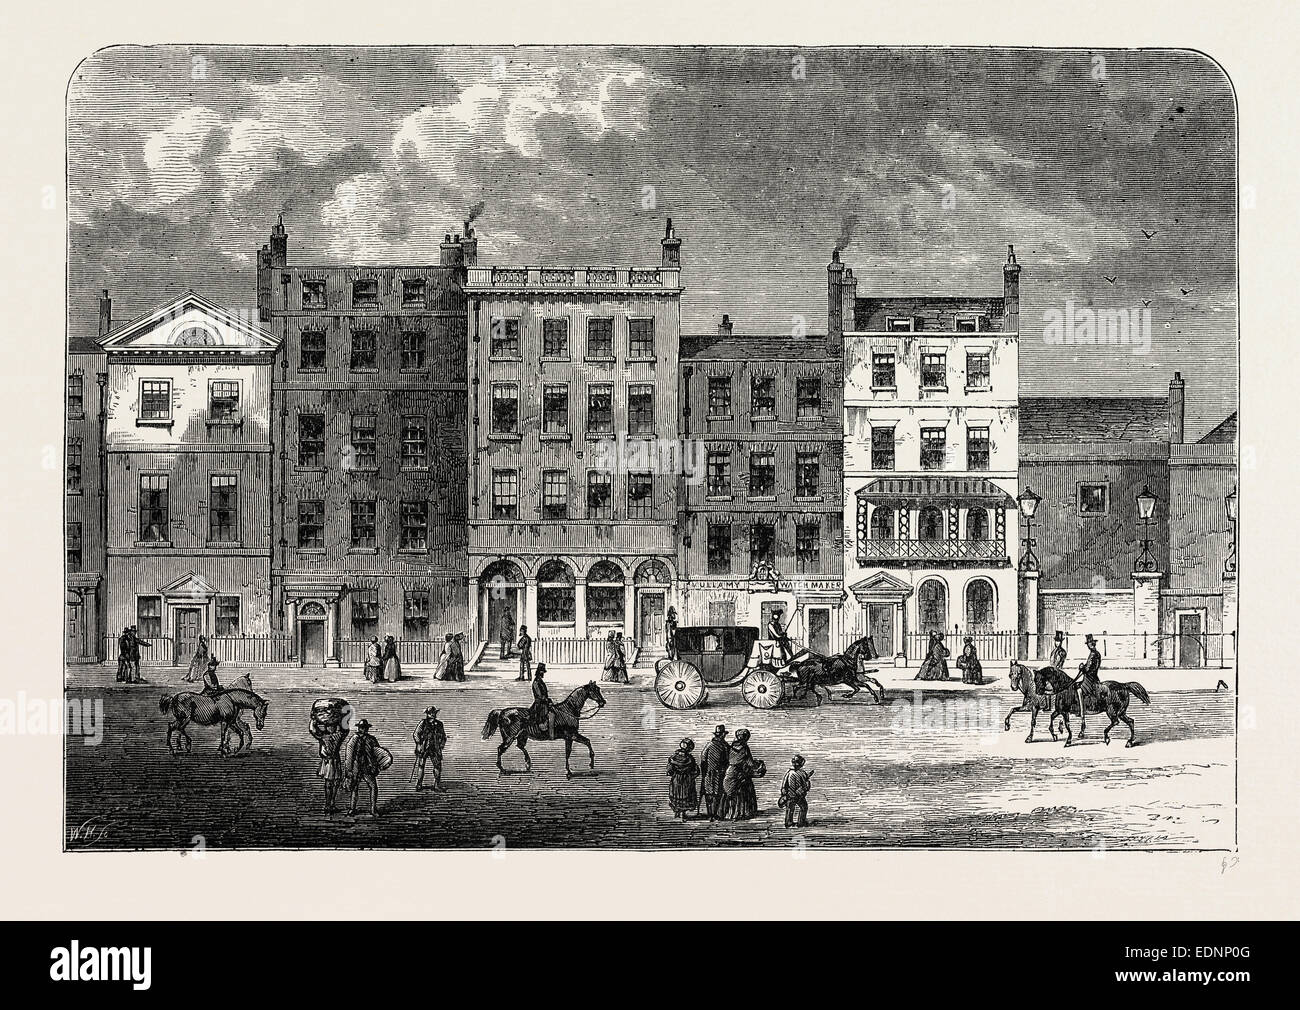 Old Houses In Pall Mall About 1830 London Uk 19th